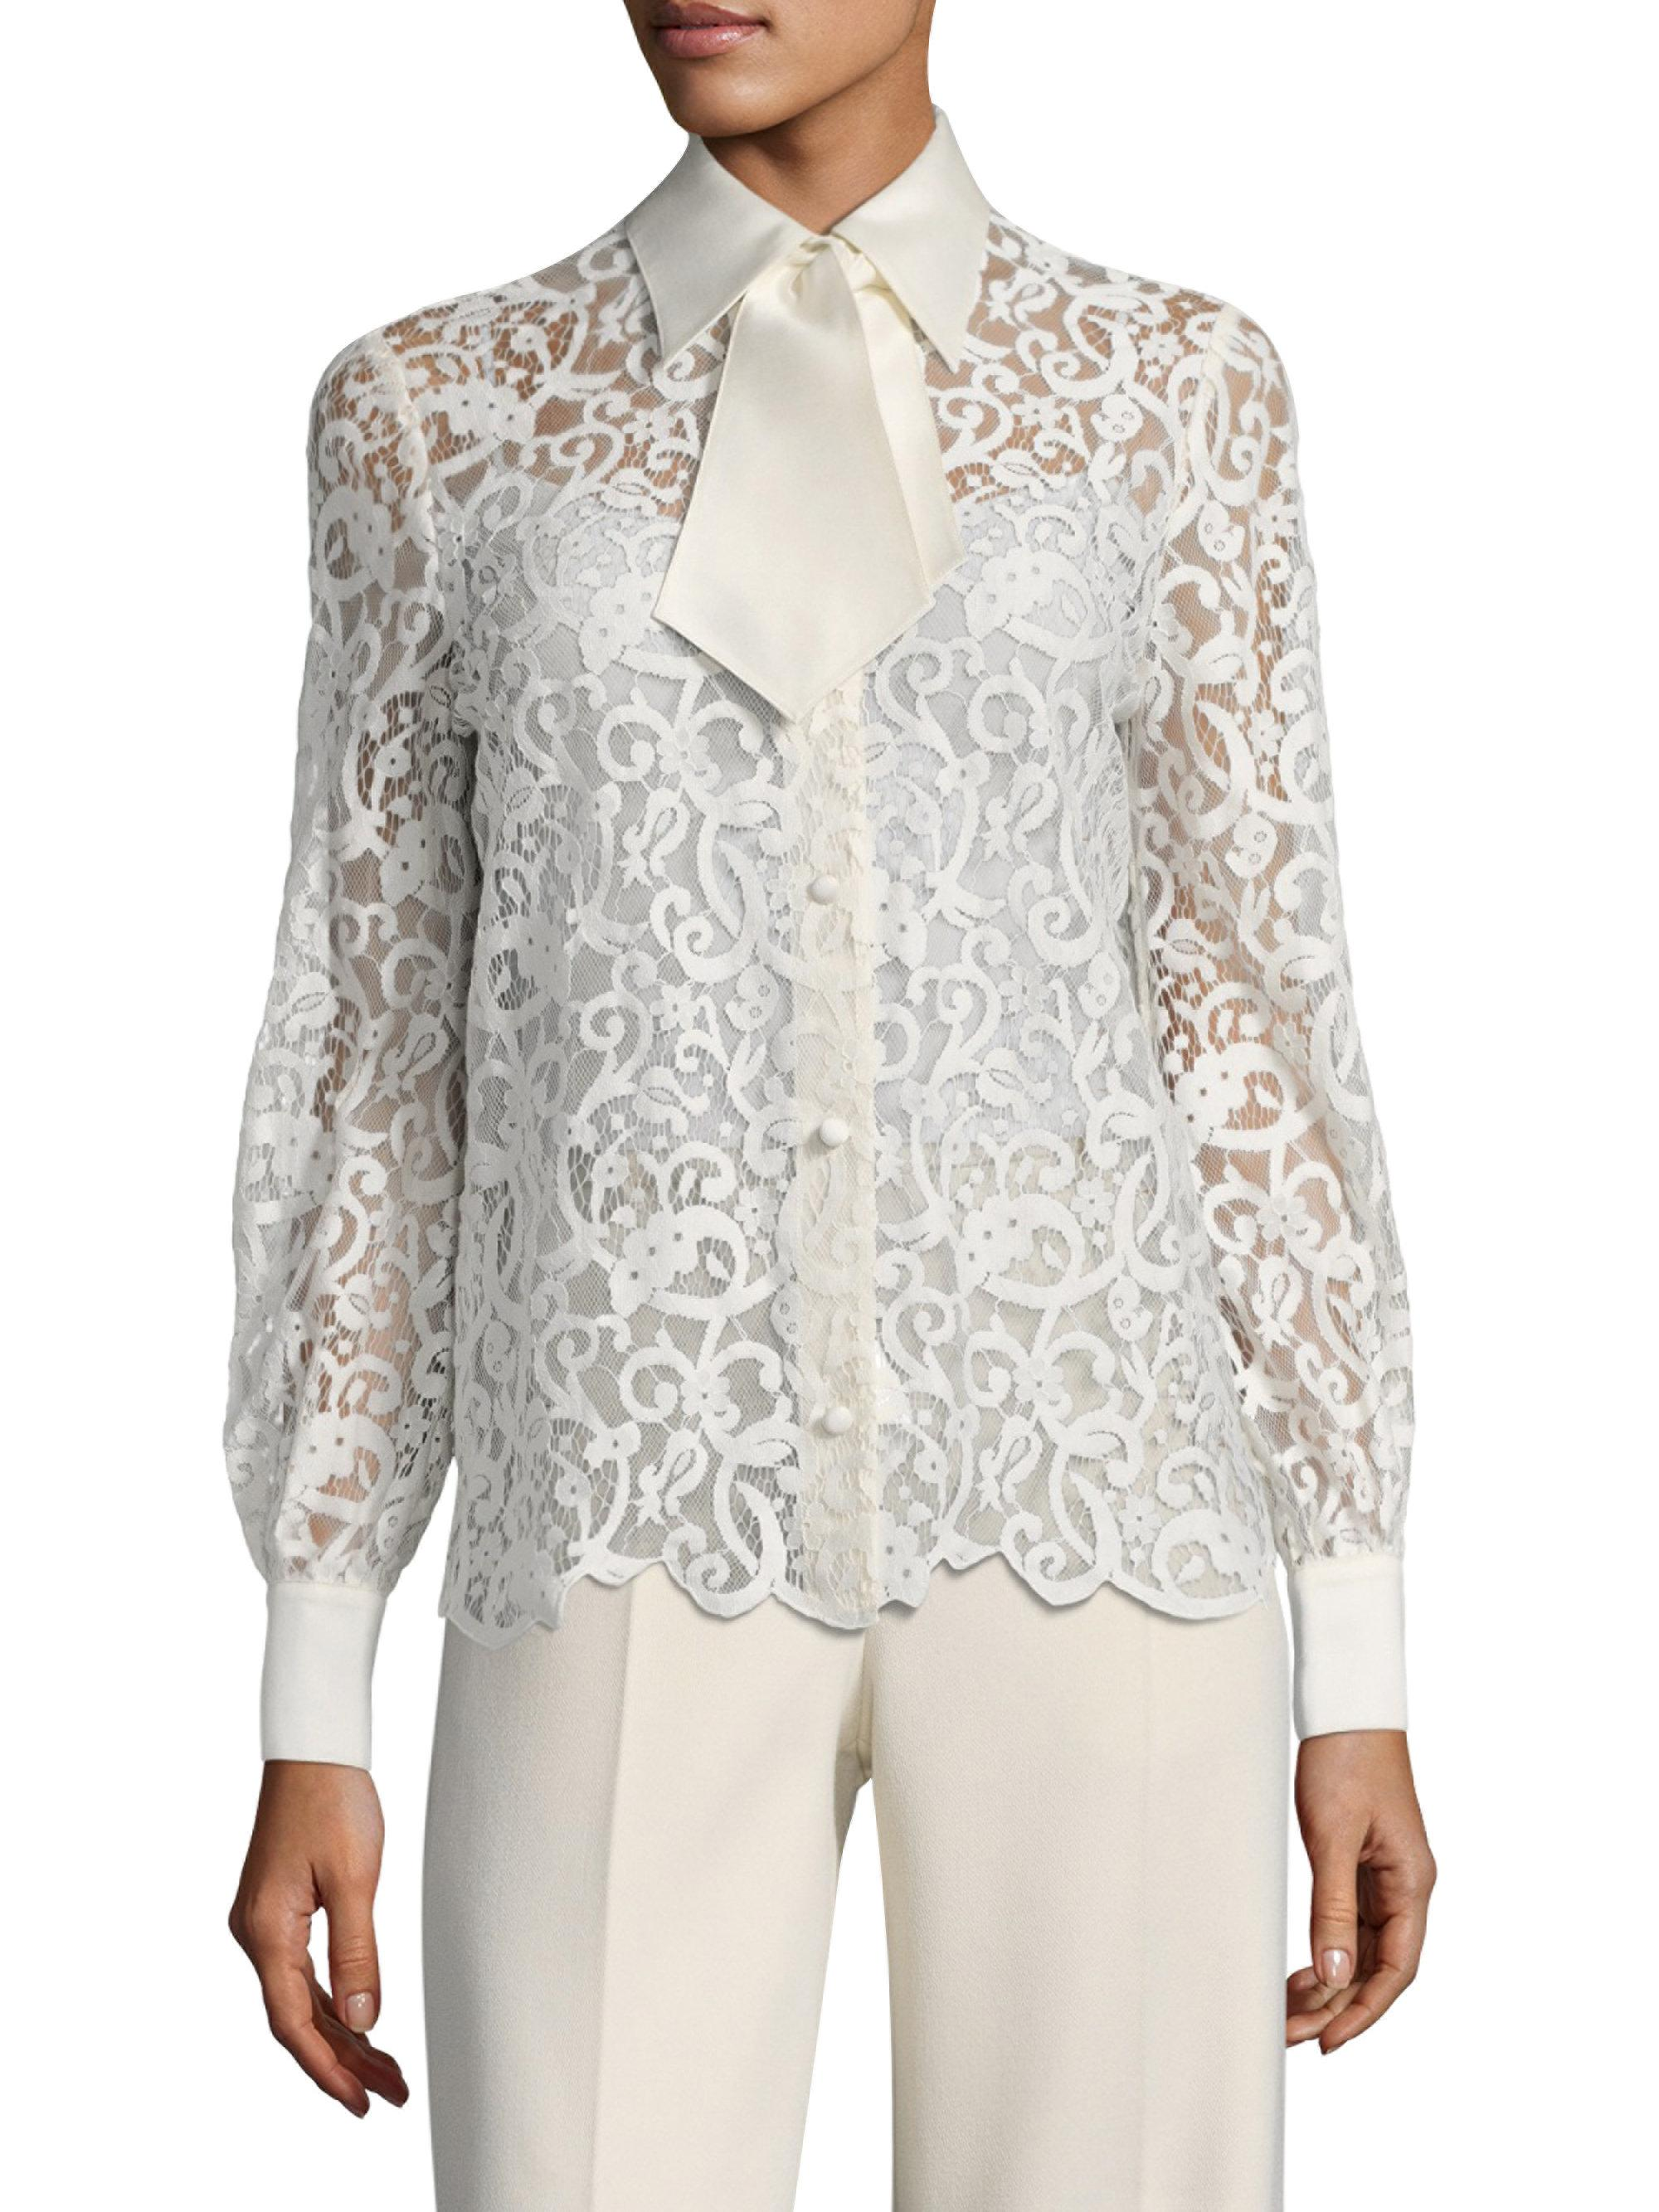 Lyst tory burch rosie button down blouse in white for Tory burch button down shirt